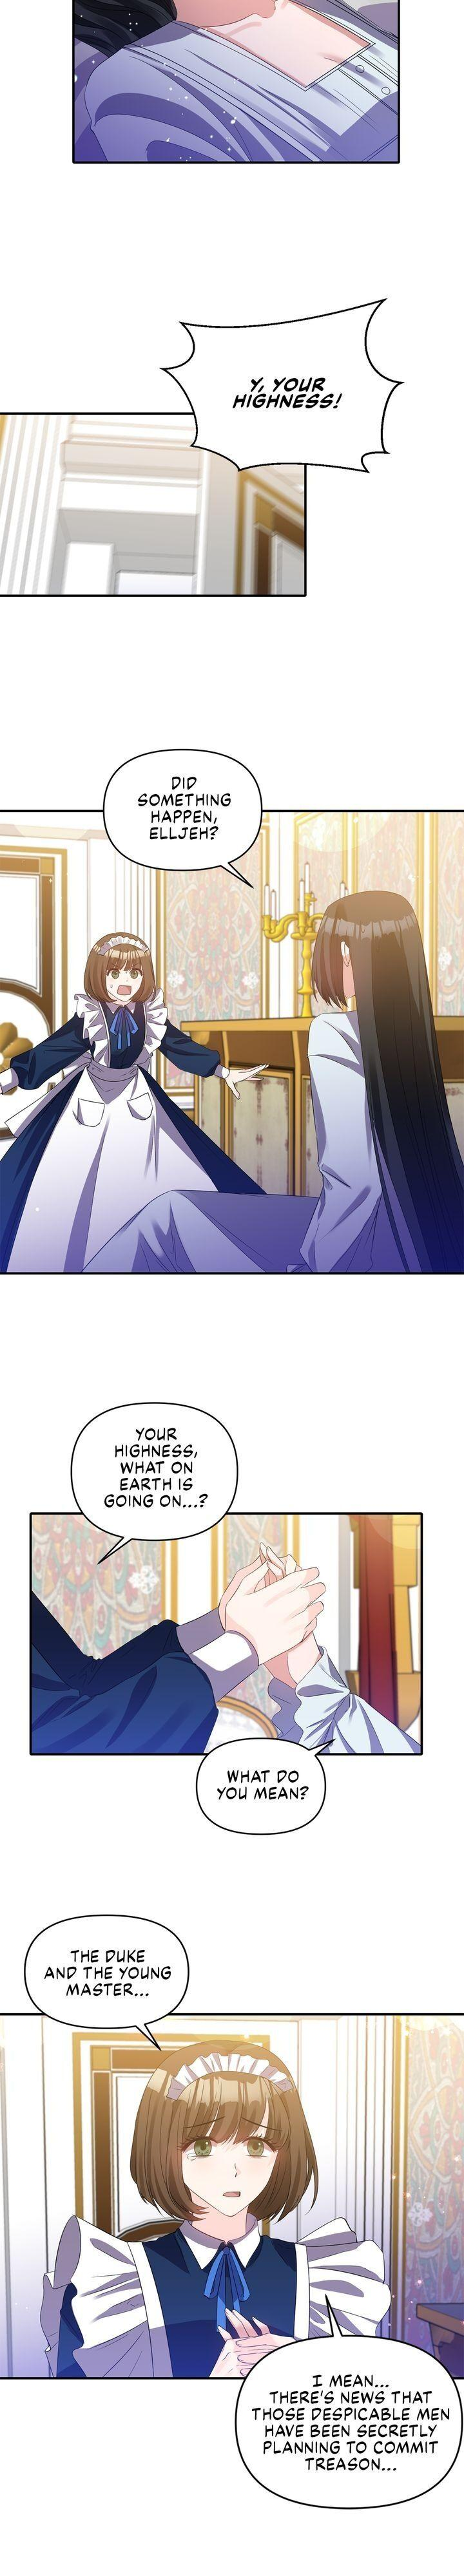 The Tyrant Husband Has Changed - chapter 24 - #2